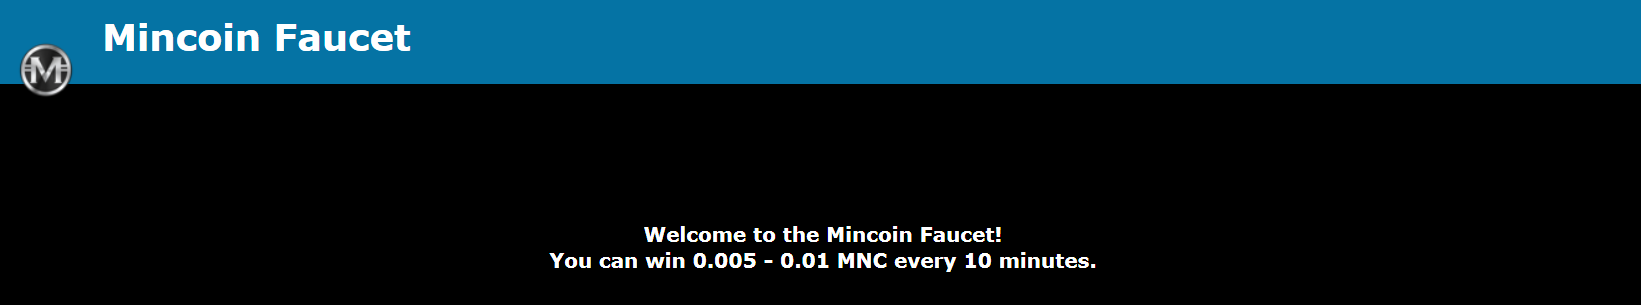 NEW MinCoin Faucet! Get FREE MinCoin Daily! - MinCoin Forums